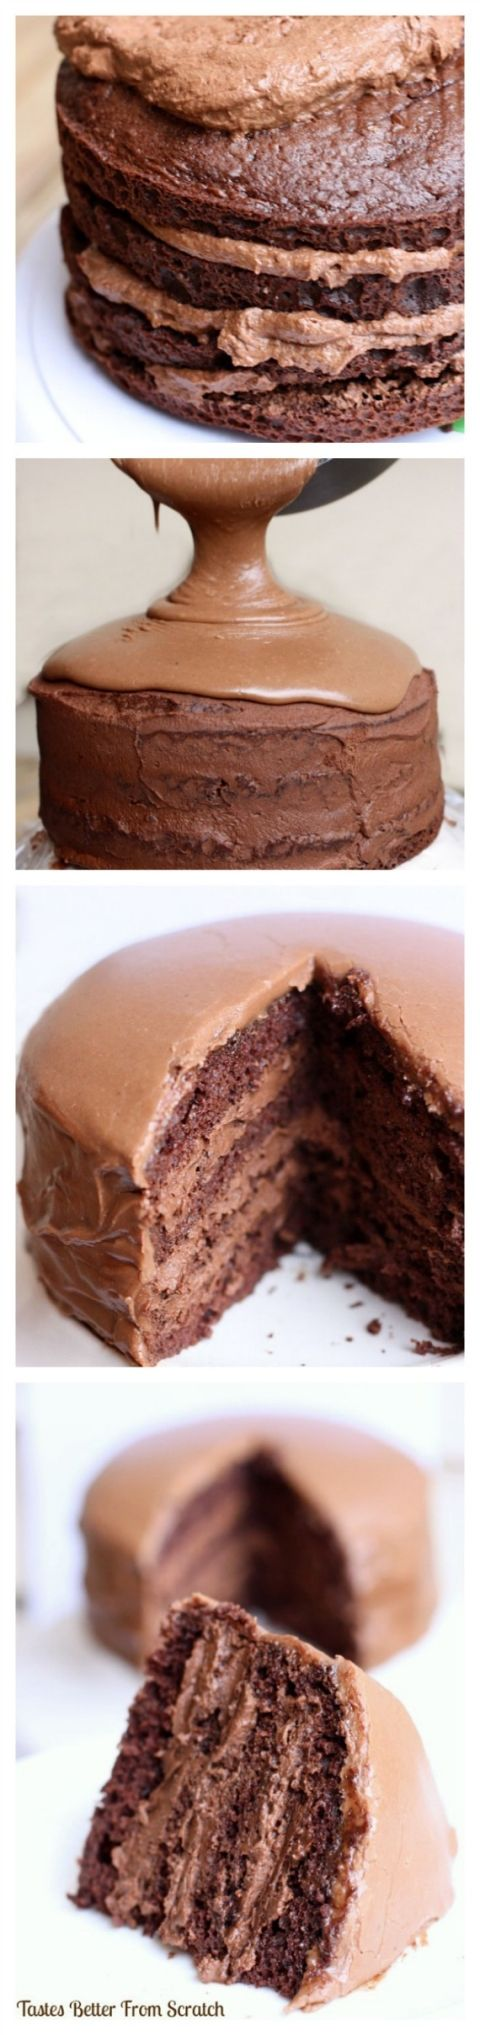 Chocolate Cake with Chocolate Mousse Filling | Recipe | Chocolate ...